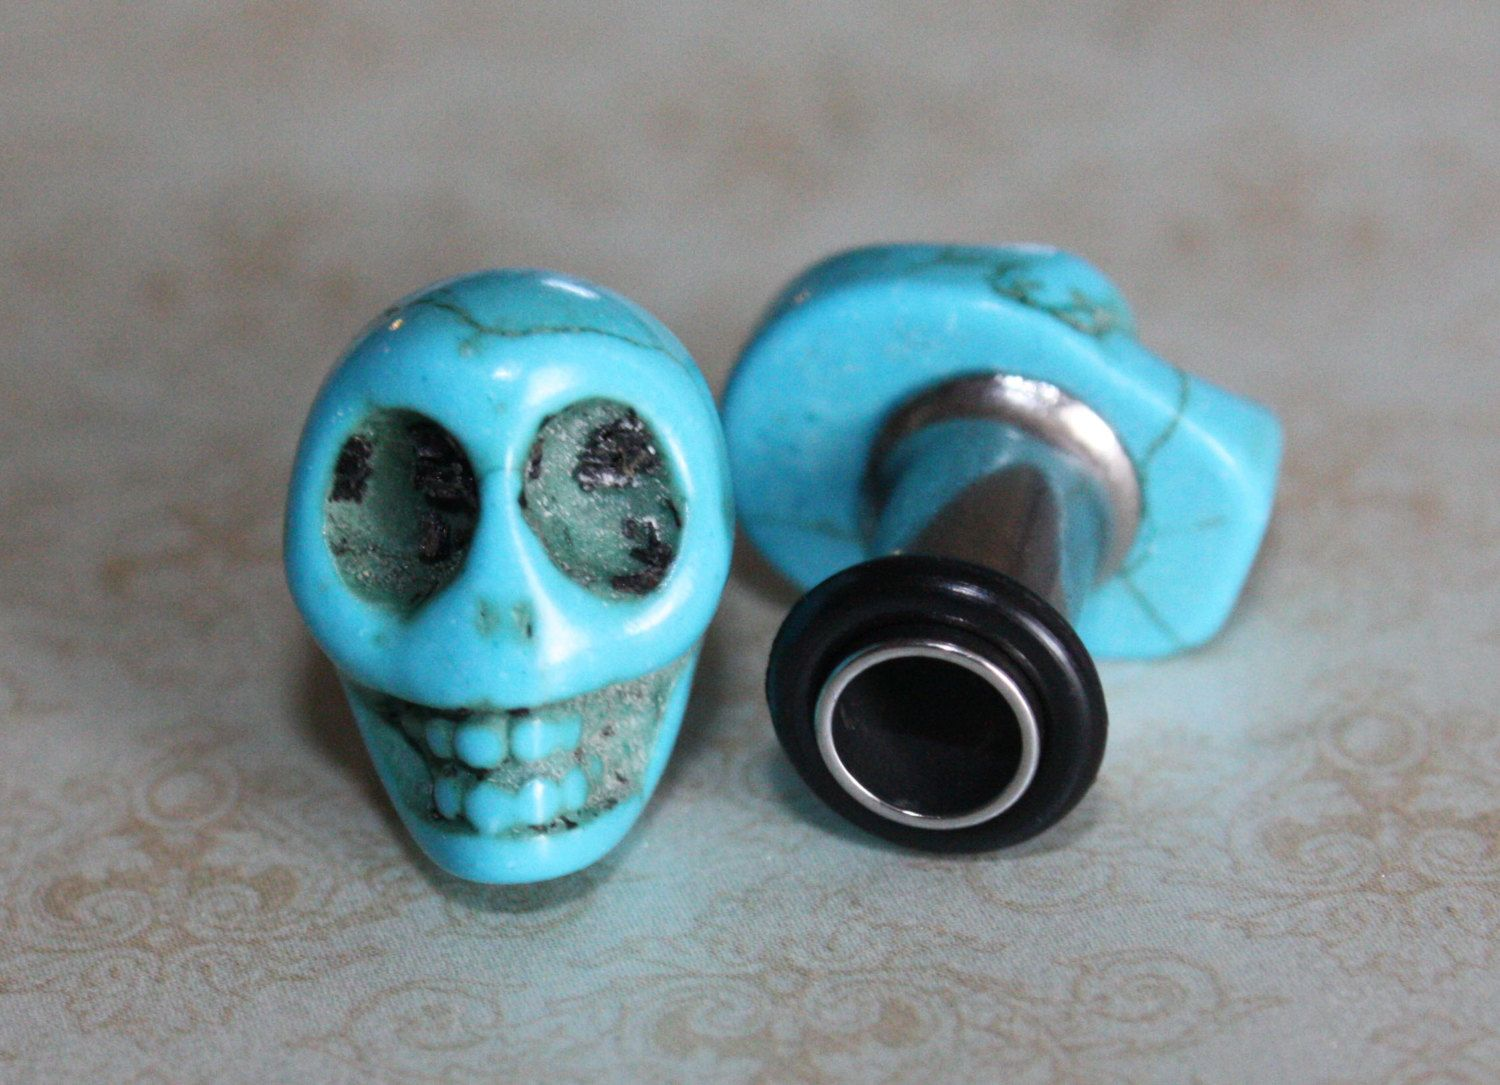 Gauging or stretching your ears information and stretch gauge kits - Blue Sugar Skull Plugs Tunnels Gauges For Gauged Stretched Ears 4g 5mm